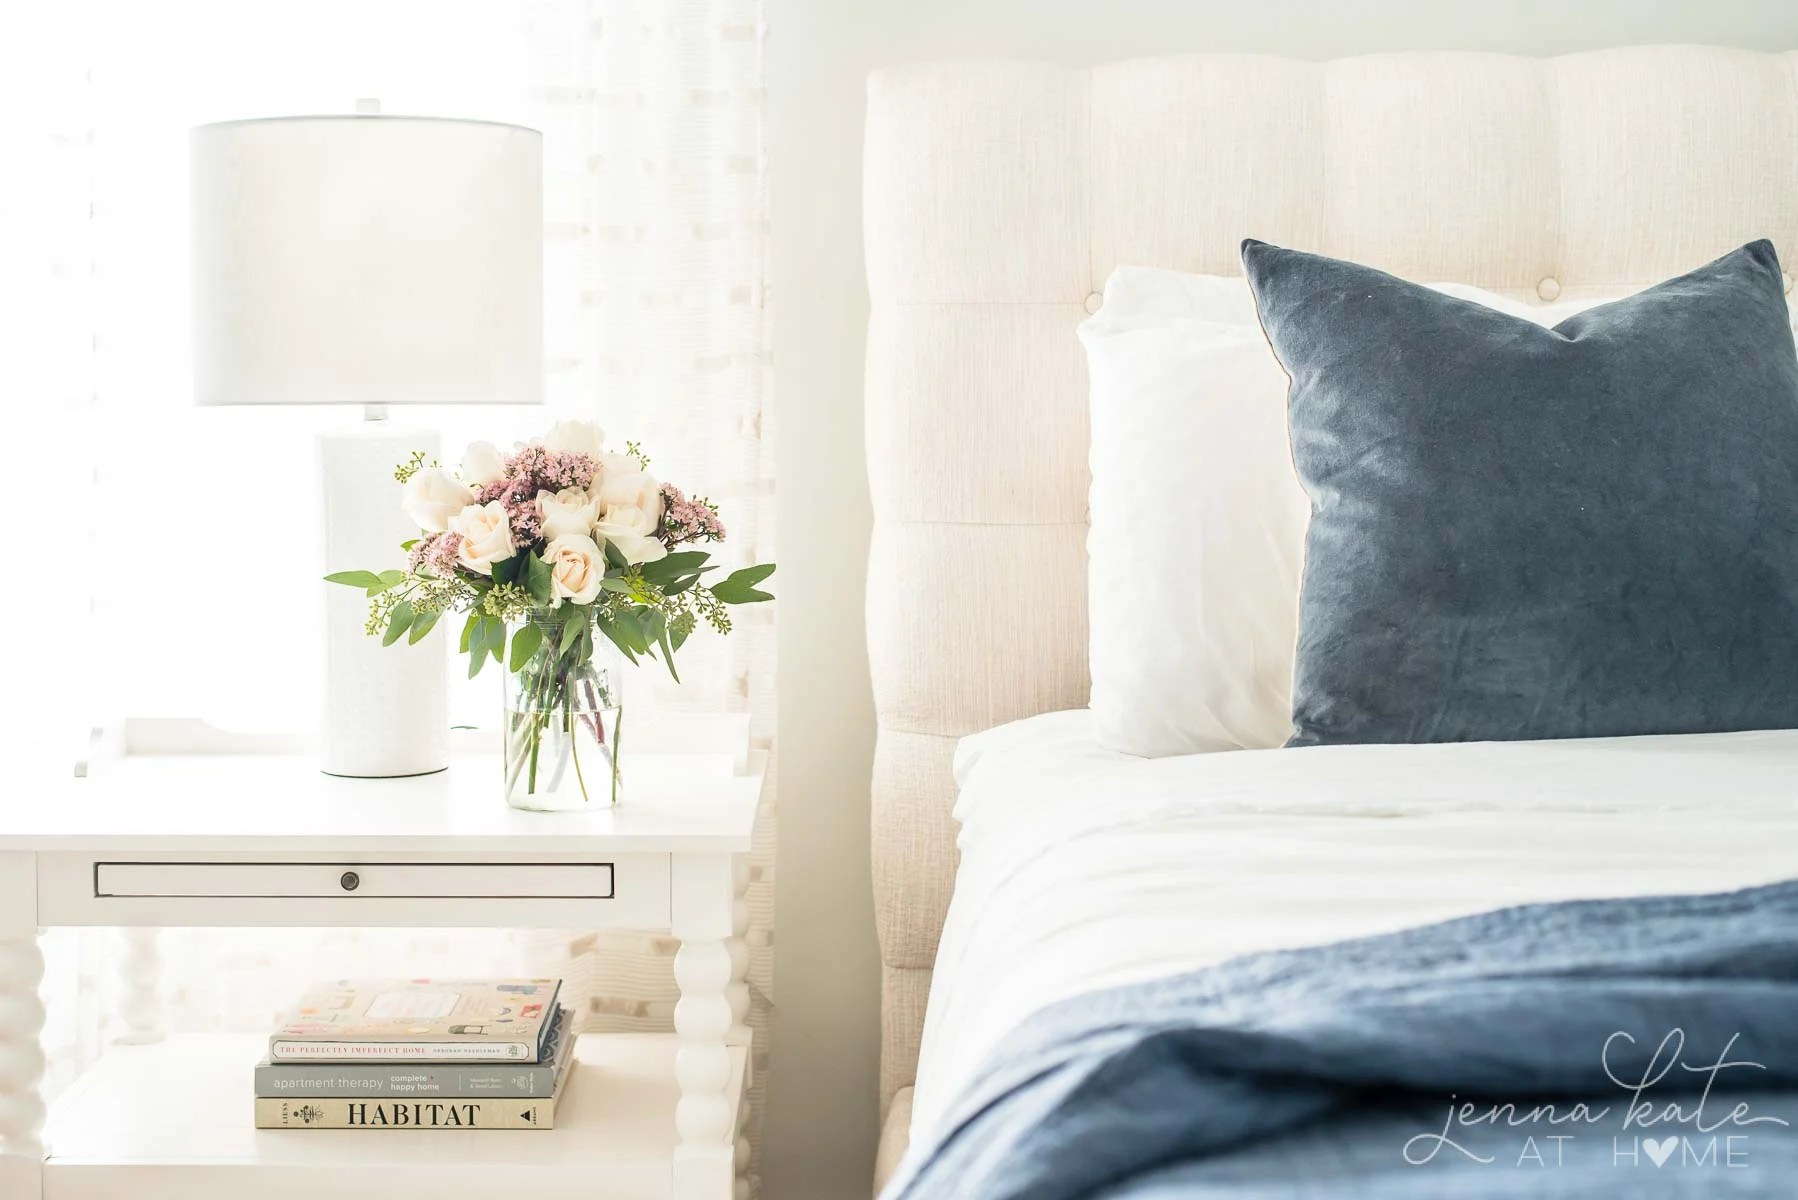 bed with fall flowers on the nightstand next to it